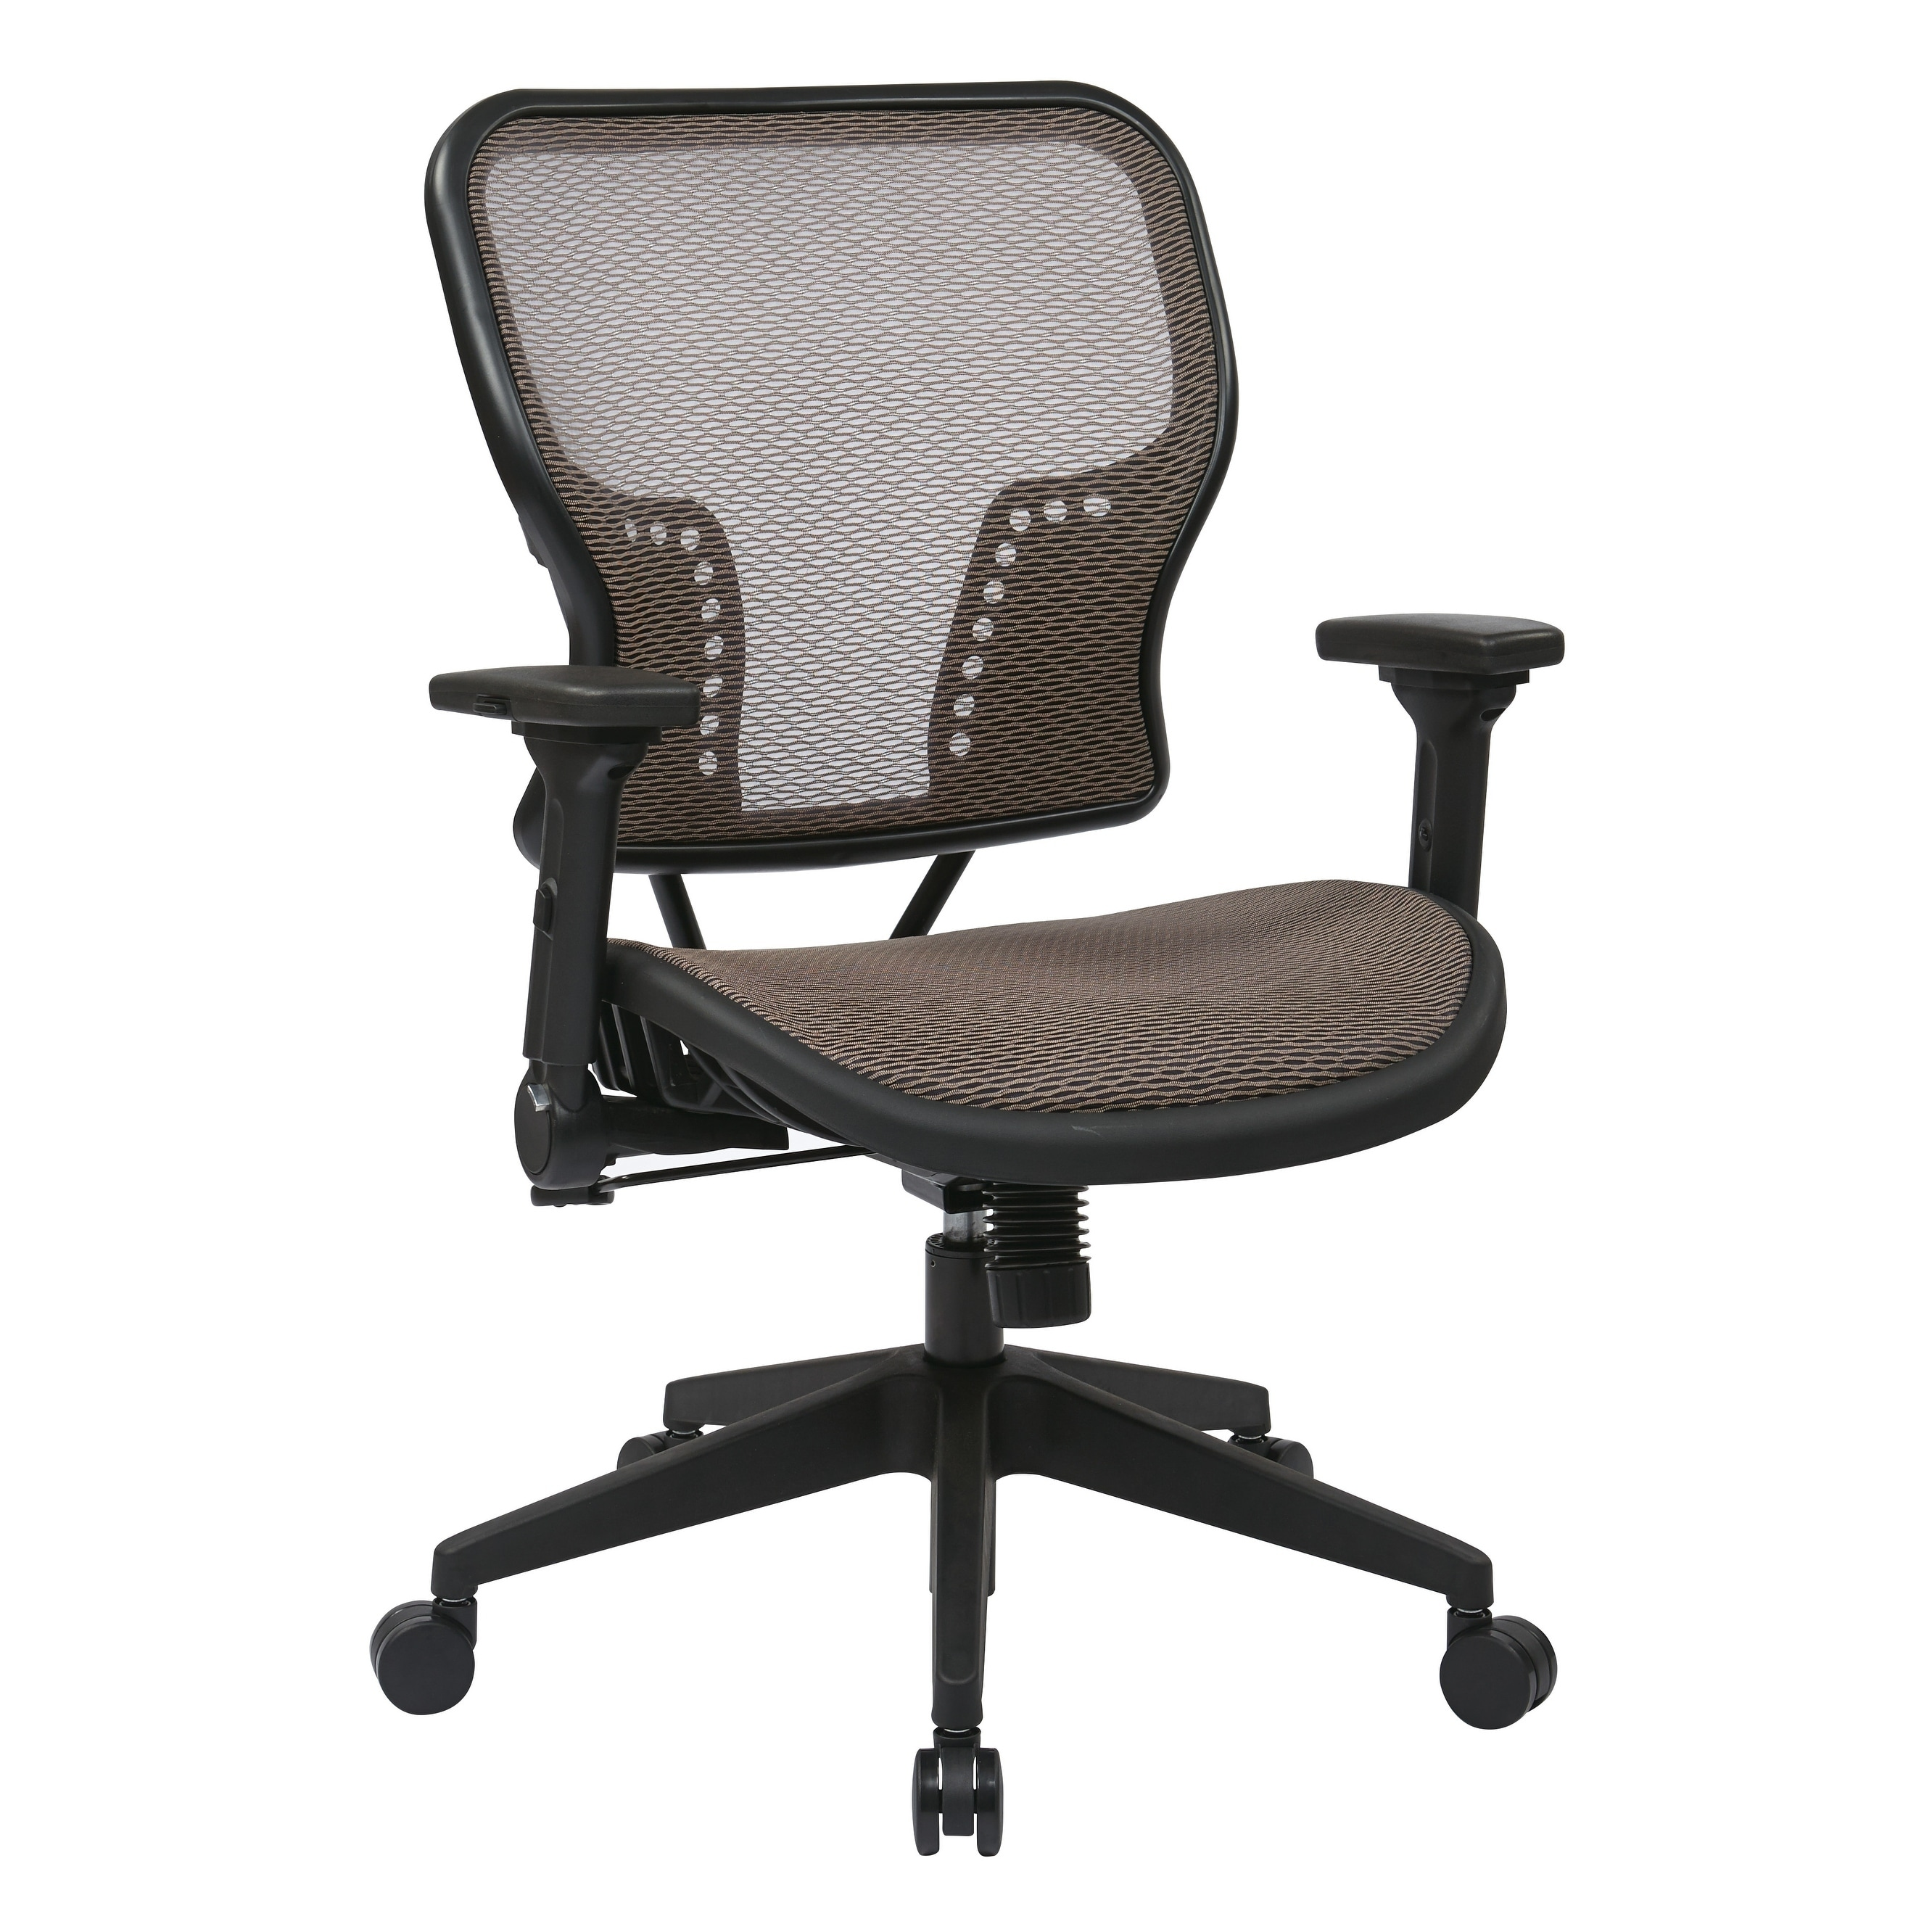 Shop Office Star SPACE Seating Latte Air Grid® Seat And Back Chair With  2 To 1 Synchro Tilt Control   Free Shipping Today   Overstock   24239345